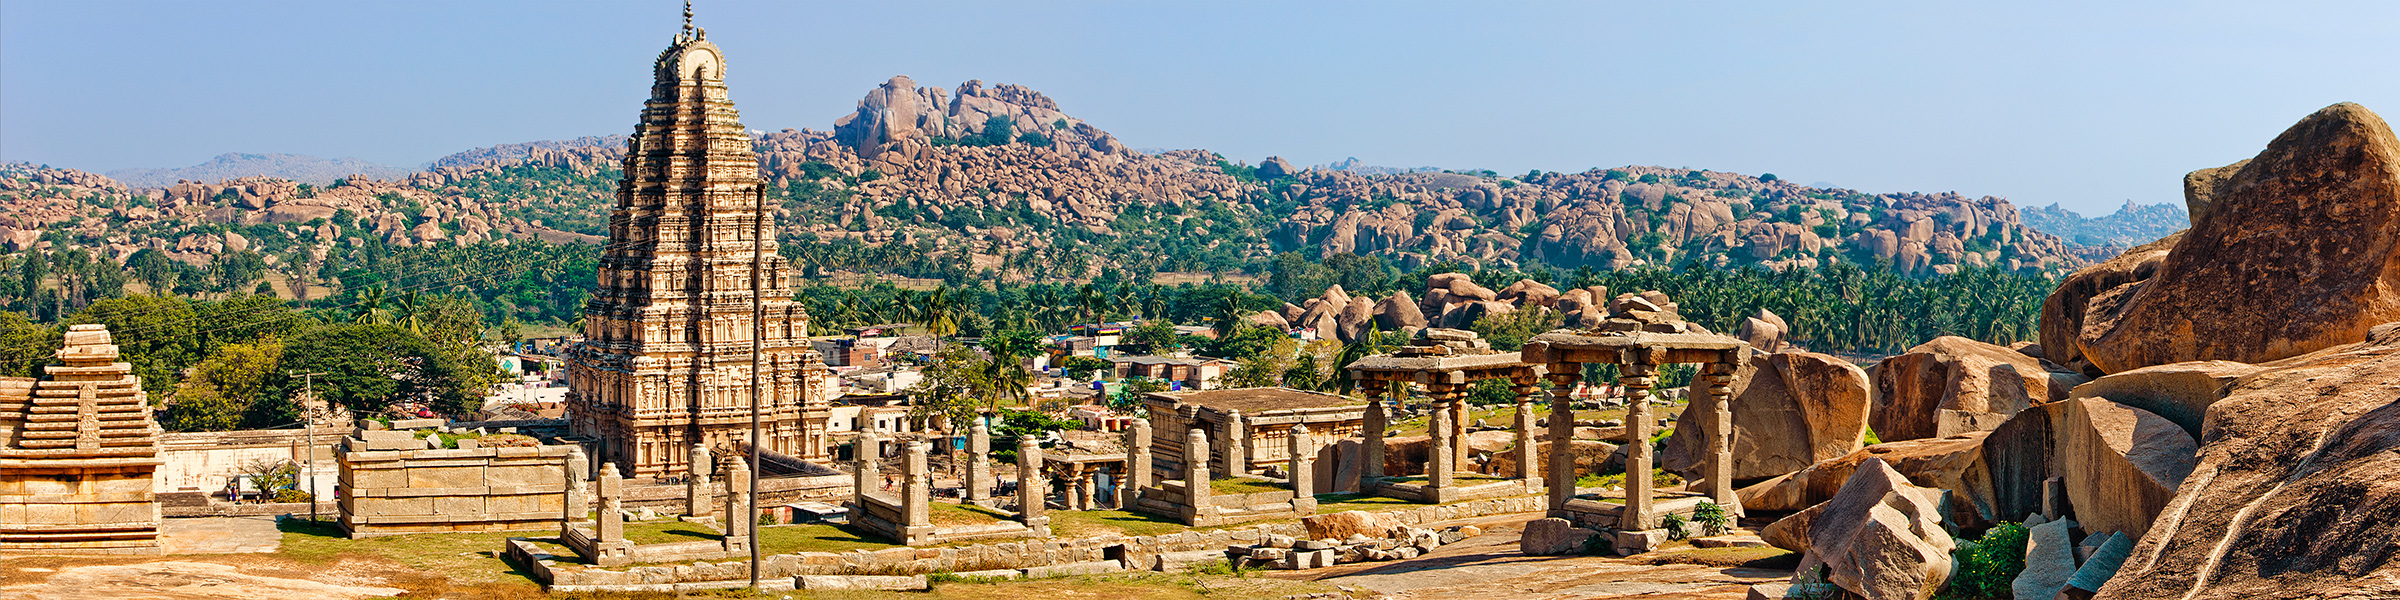 India Hampi Virupaksha Temple